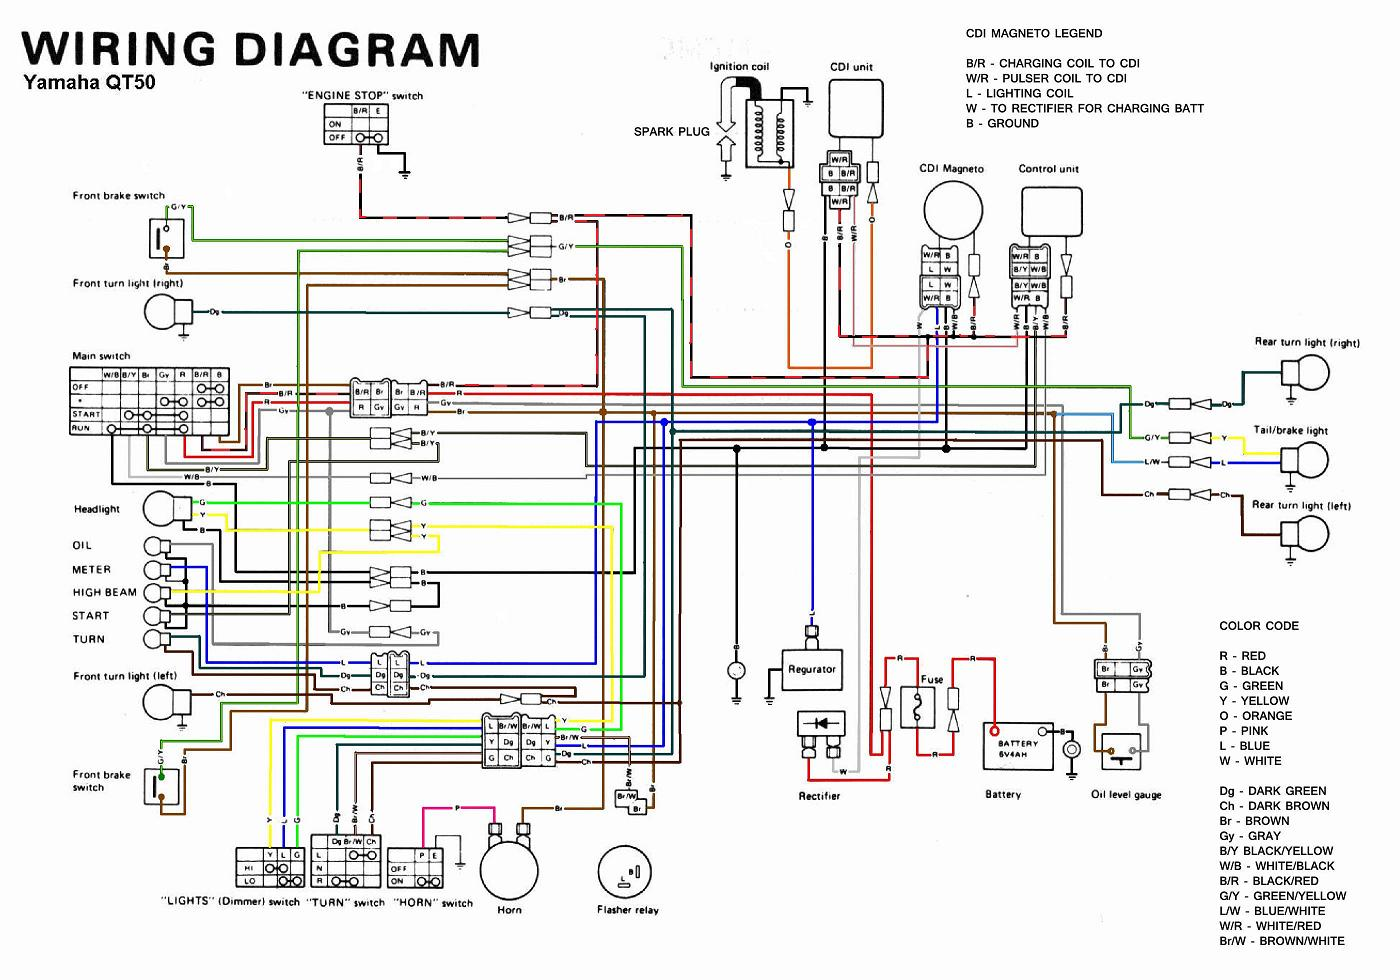 Yamaha QT50 Wiring Diagram honda 50 wiring diagram xr 400 wiring diagram \u2022 free wiring  at gsmportal.co